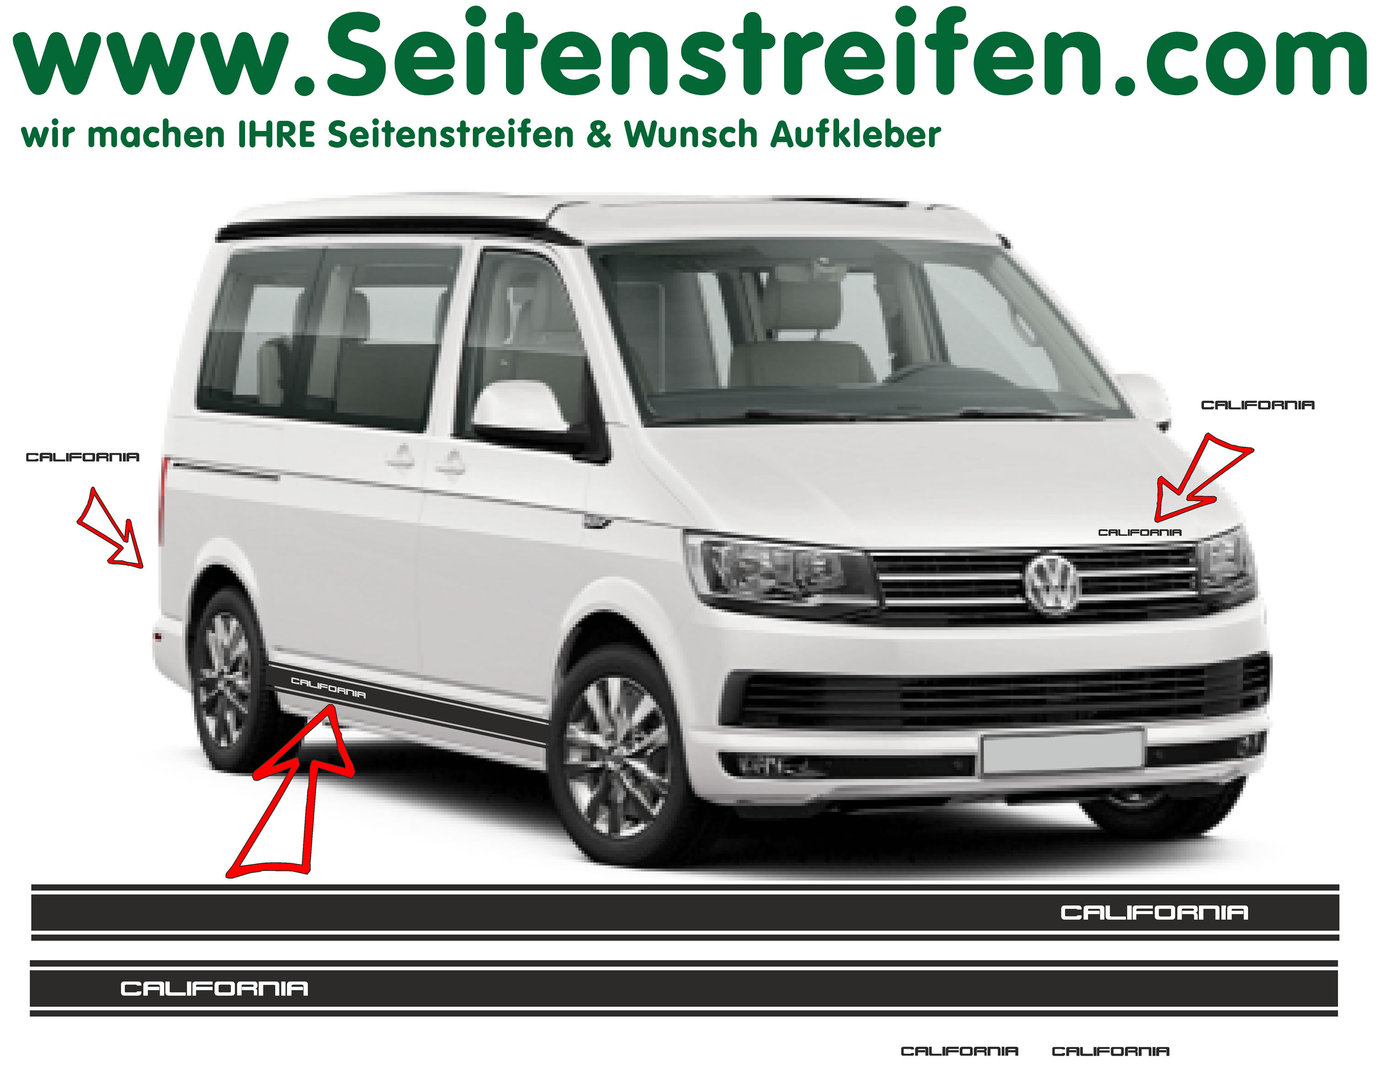 VW BUS T5 T6 California Version N°2  Seitenstreifen Aufkleber Dekor Set - Art.Nr.: 6690